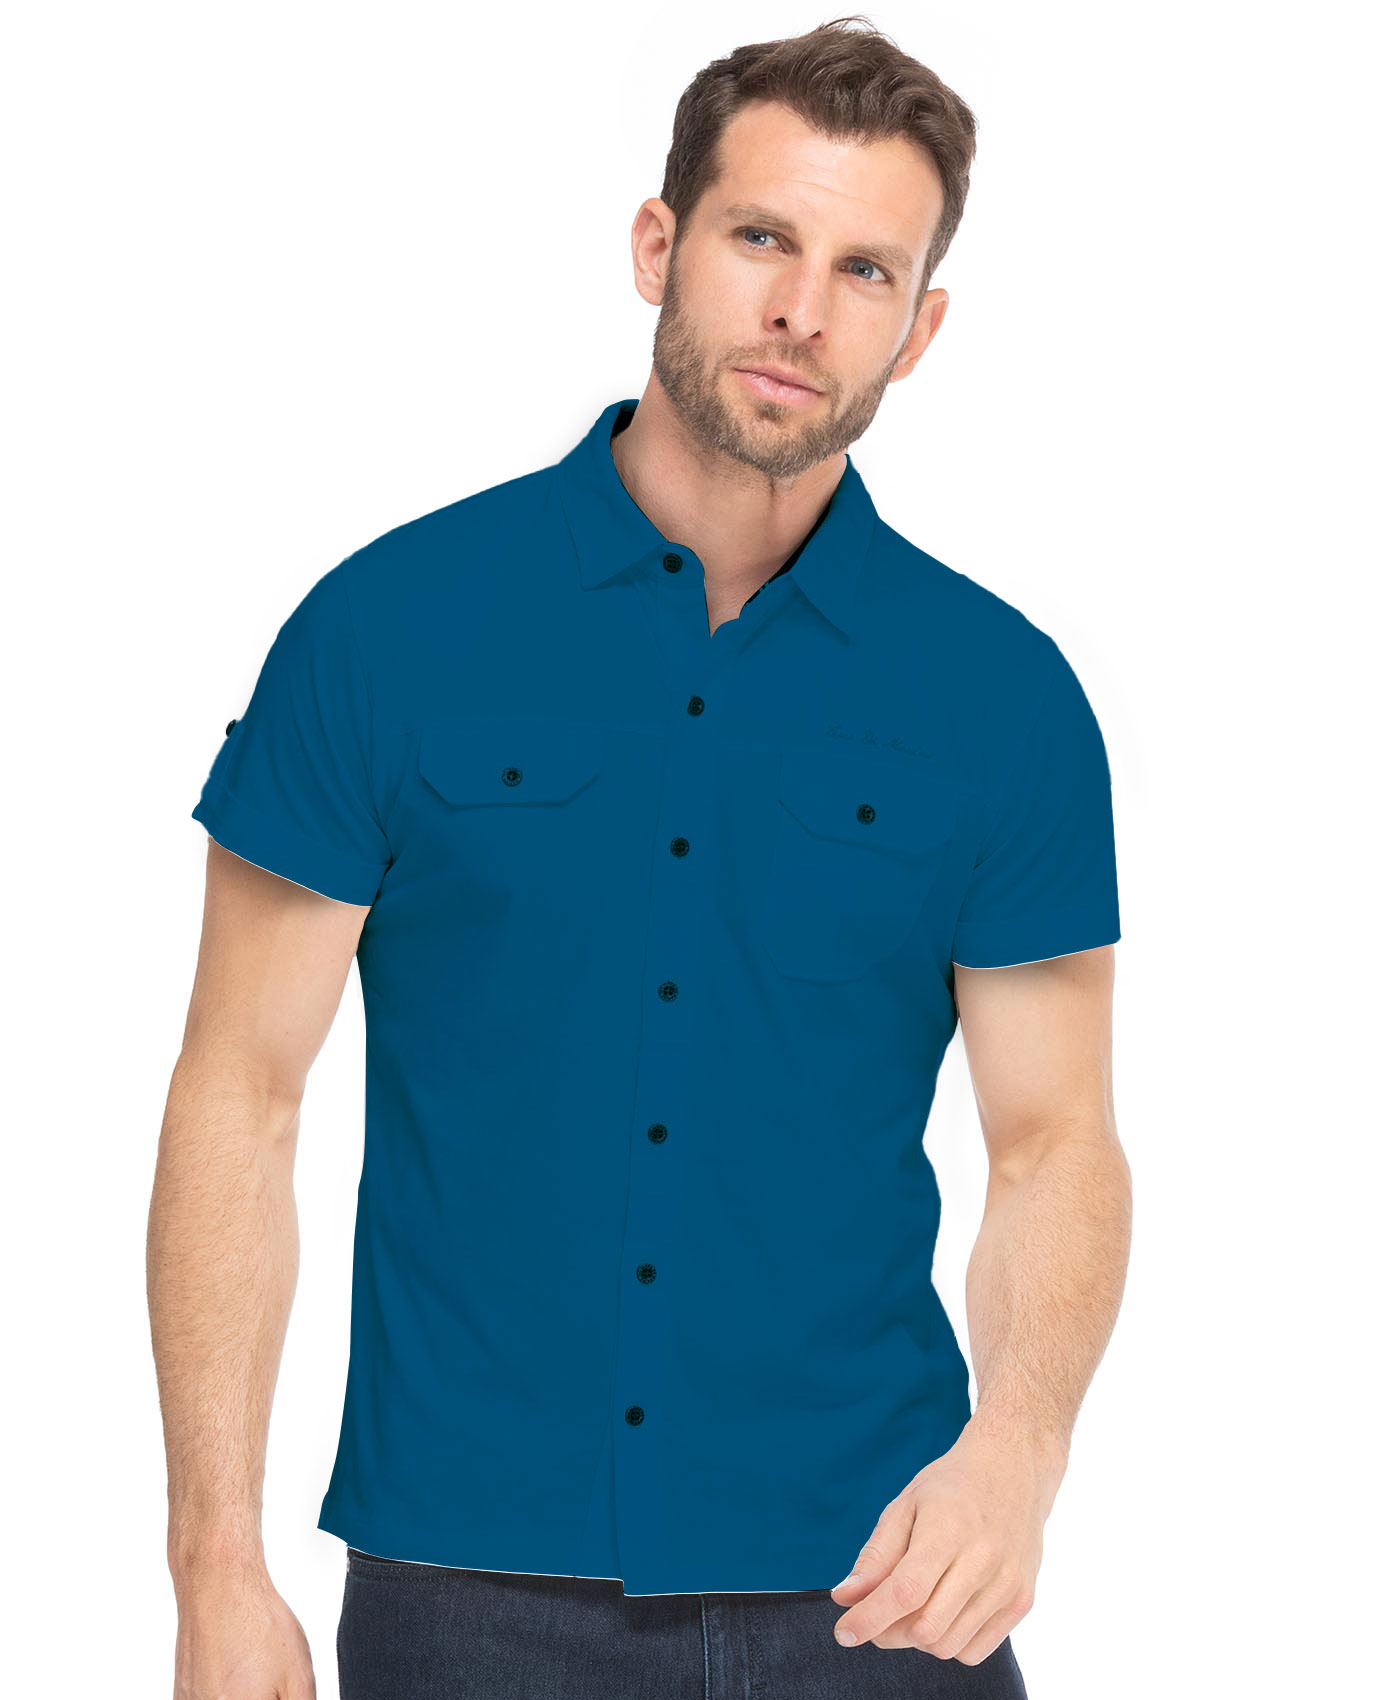 Chemise manches courtes à poches homme - Mode marine Homme